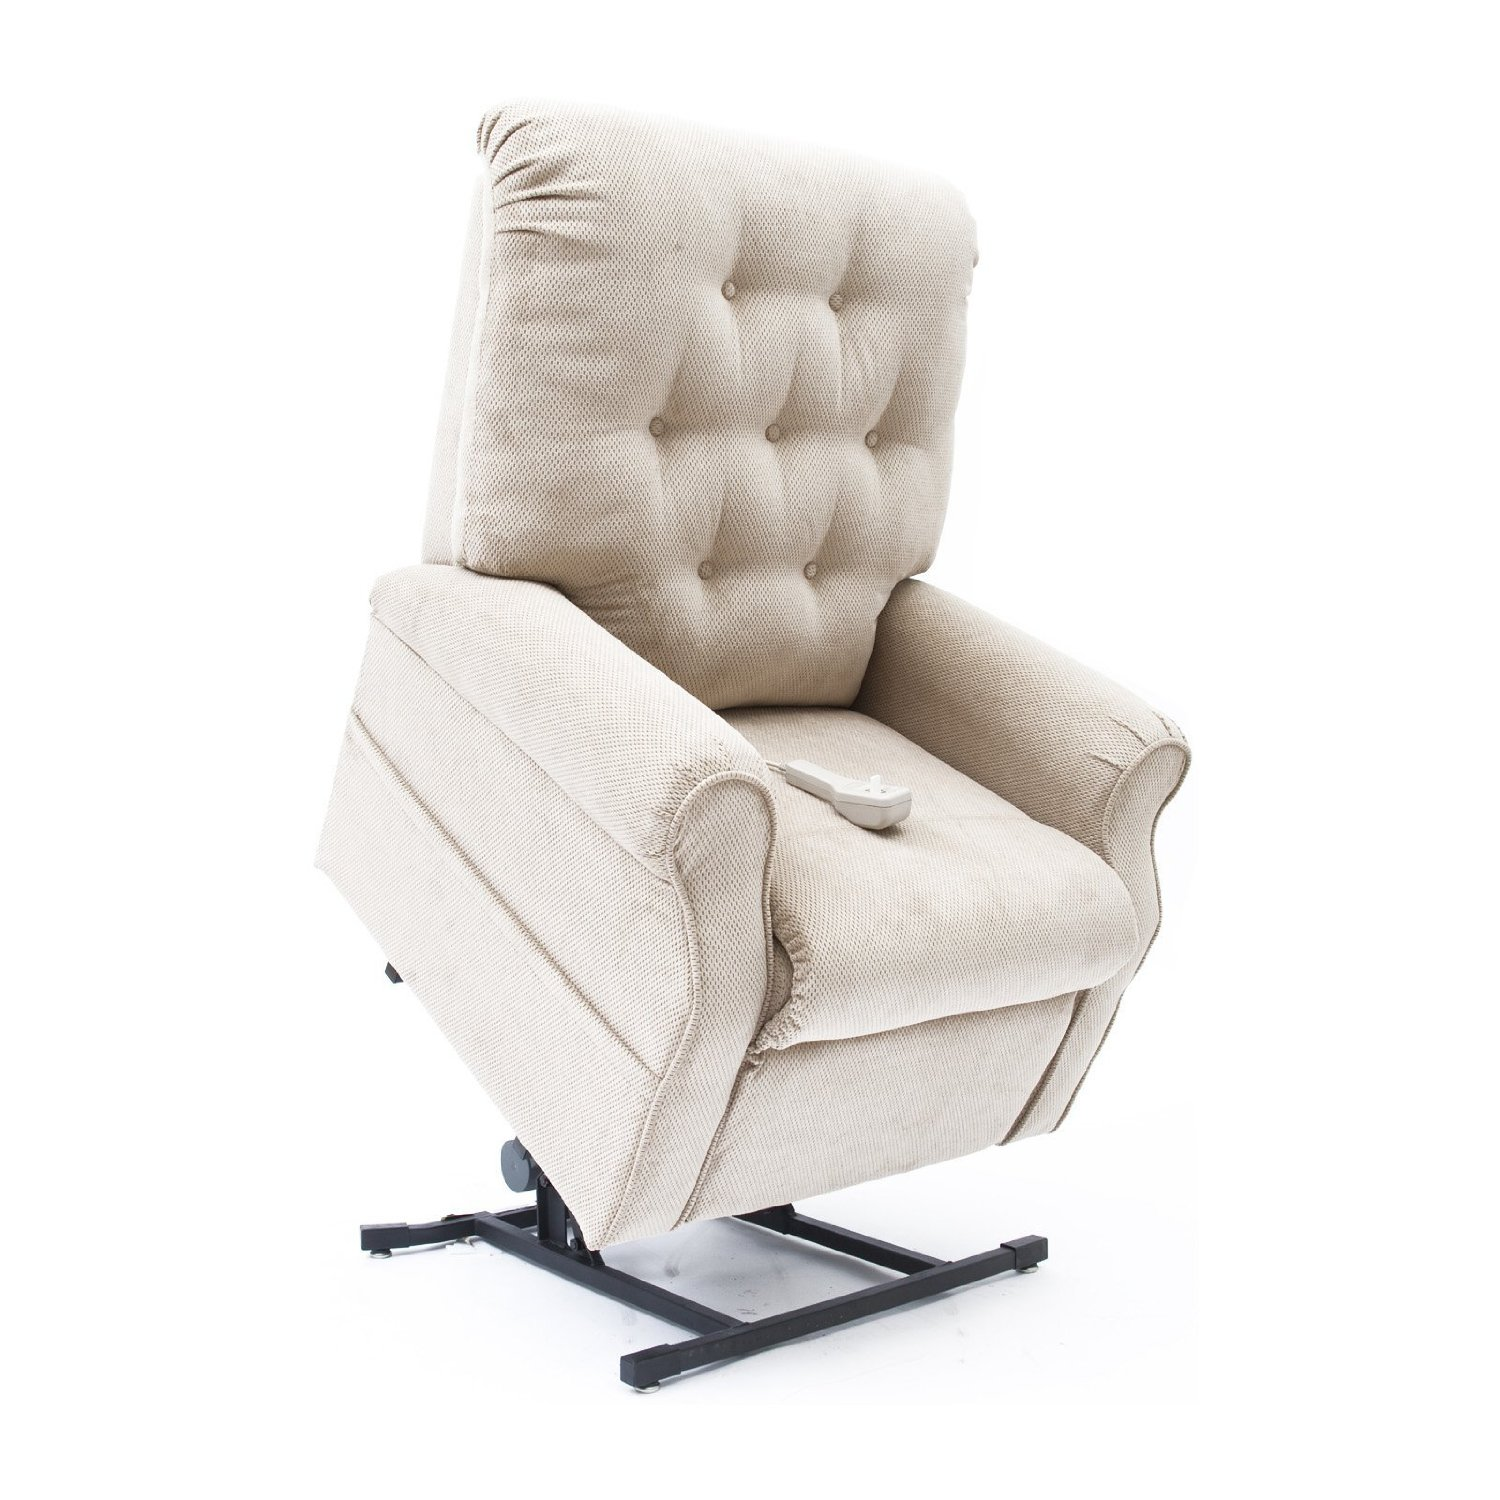 New Fawn Tan Easy Comfort LC 200 Power Electric Lift Chair Mega Motion Reclin